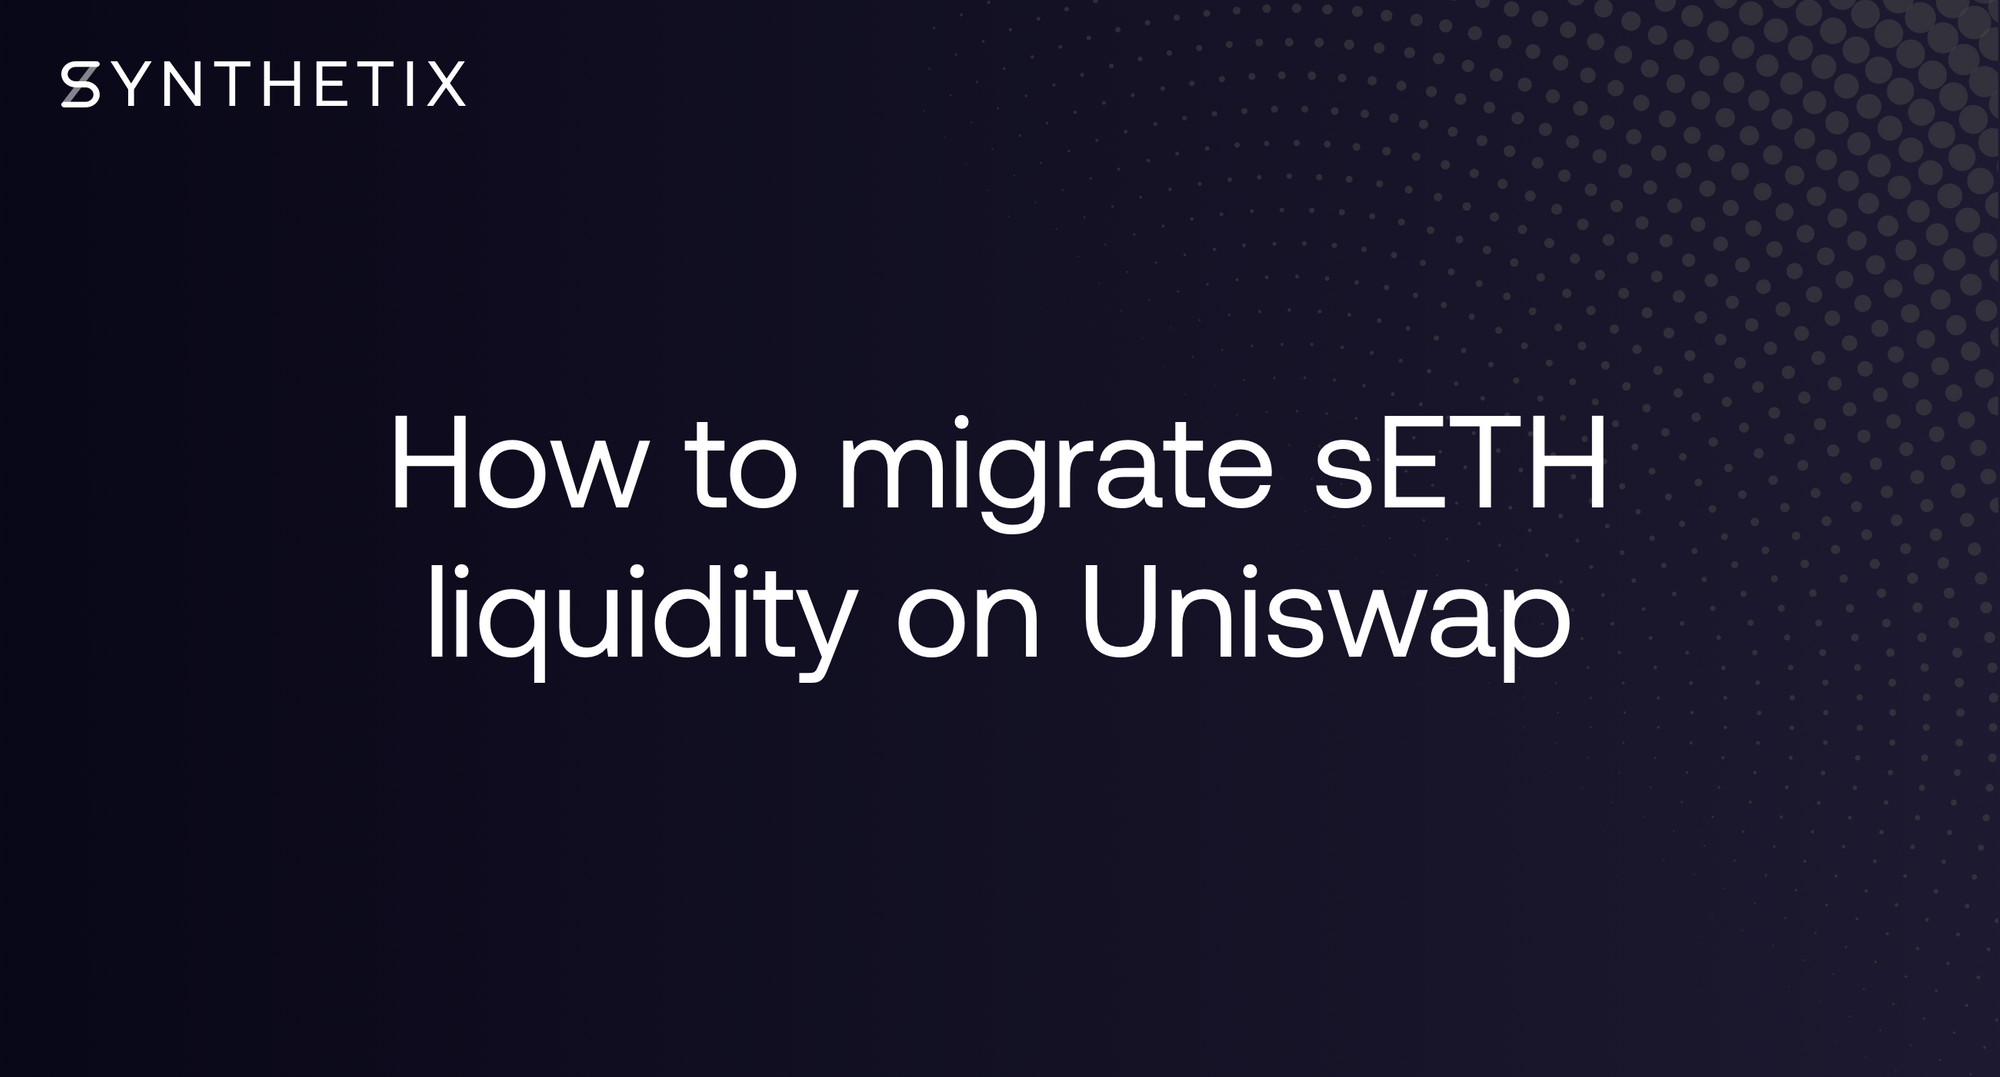 Guide: how to migrate sETH liquidity on Uniswap